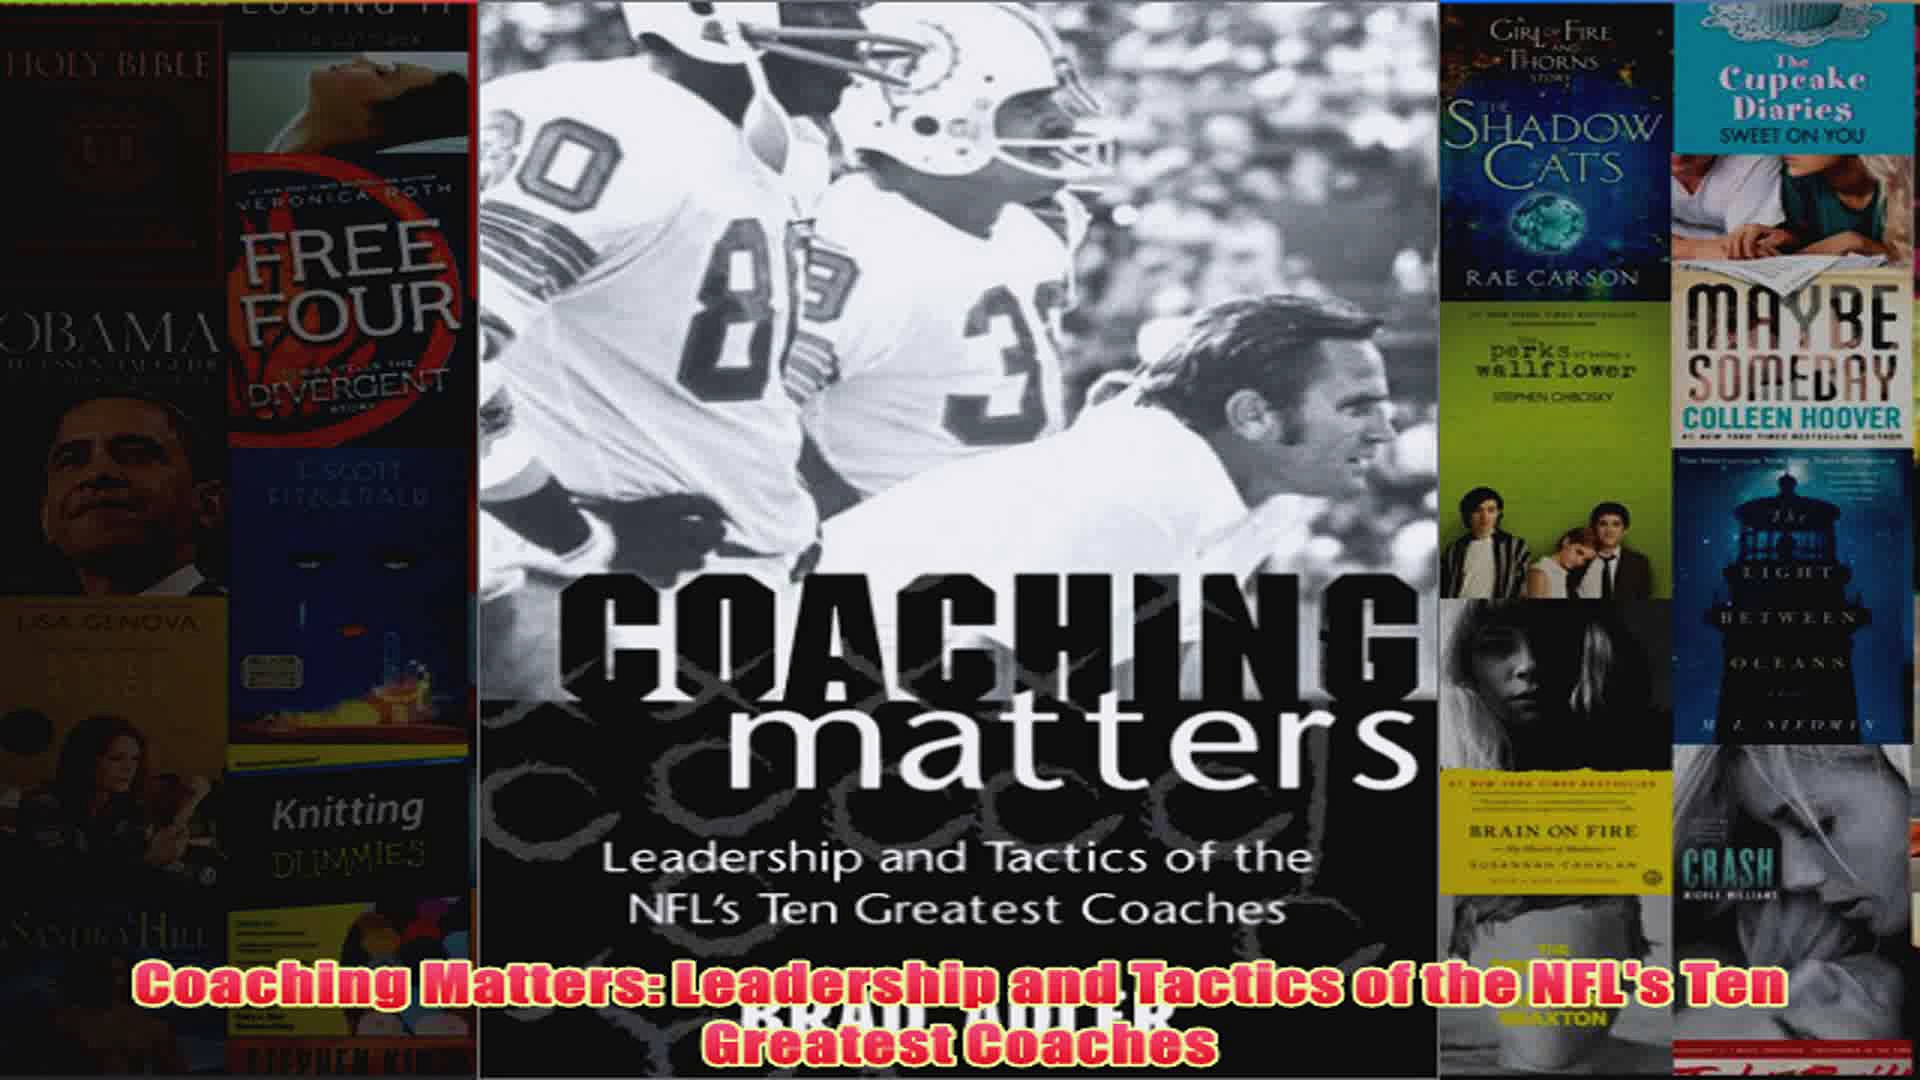 Coaching Matters Leadership and Tactics of the NFLs Ten Greatest Coaches